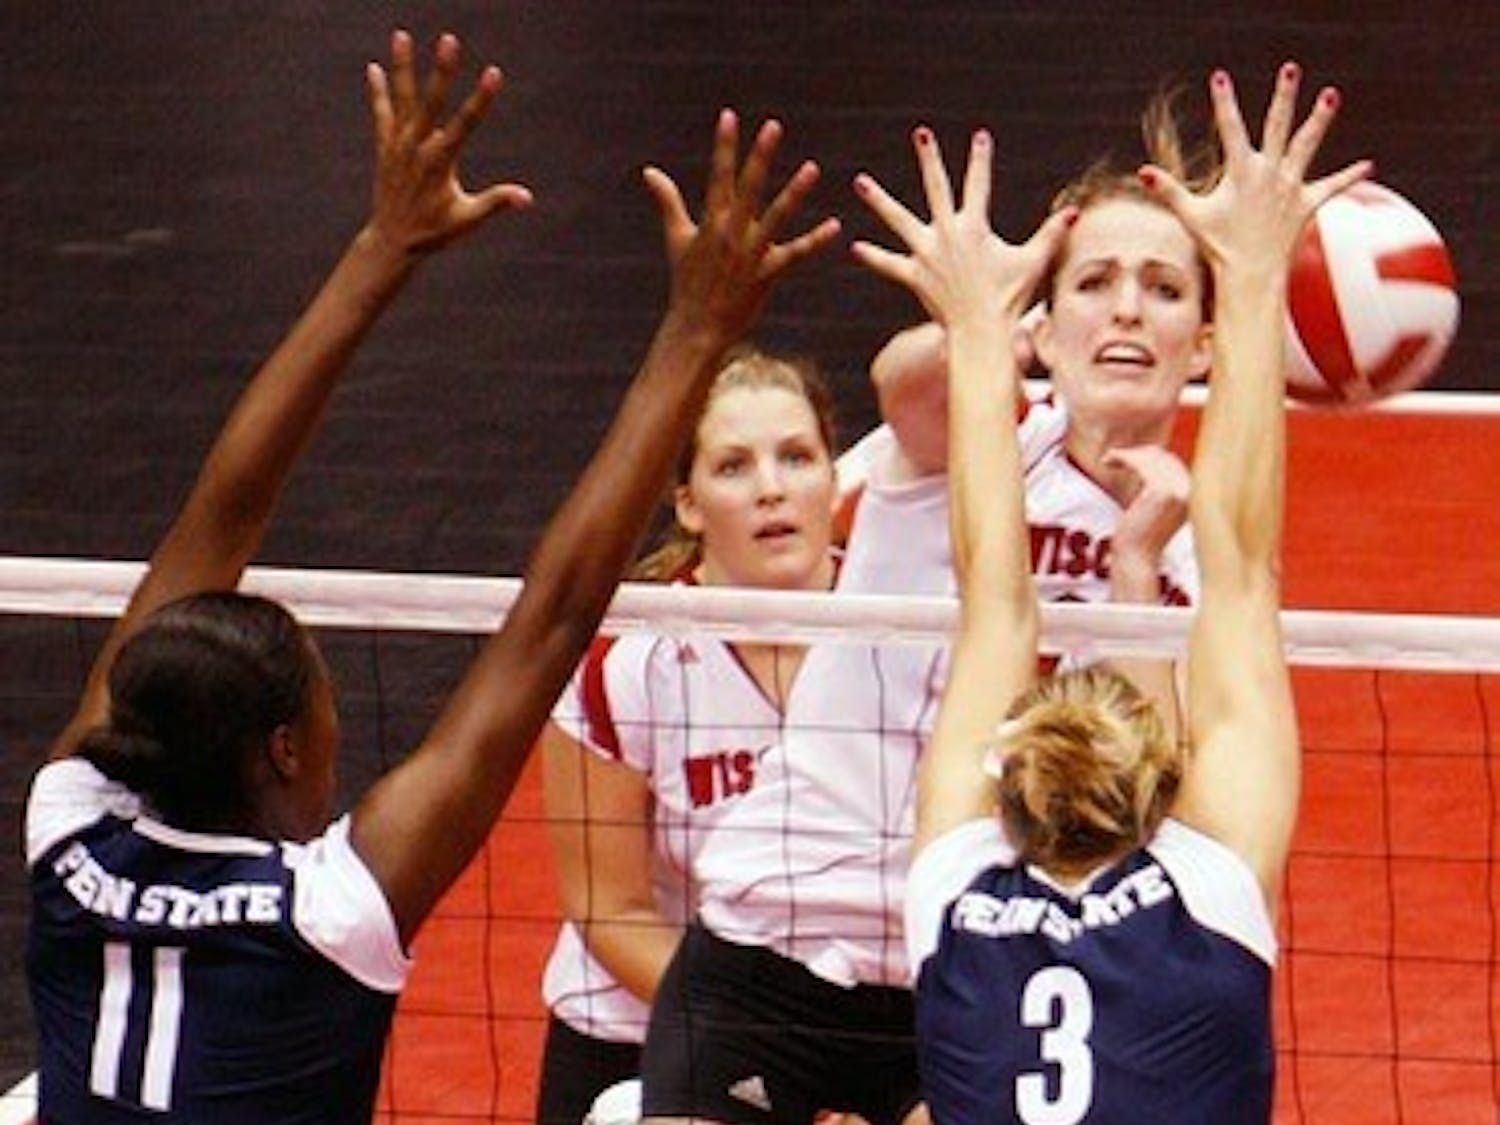 Volleyball will play host to undefeated Lions